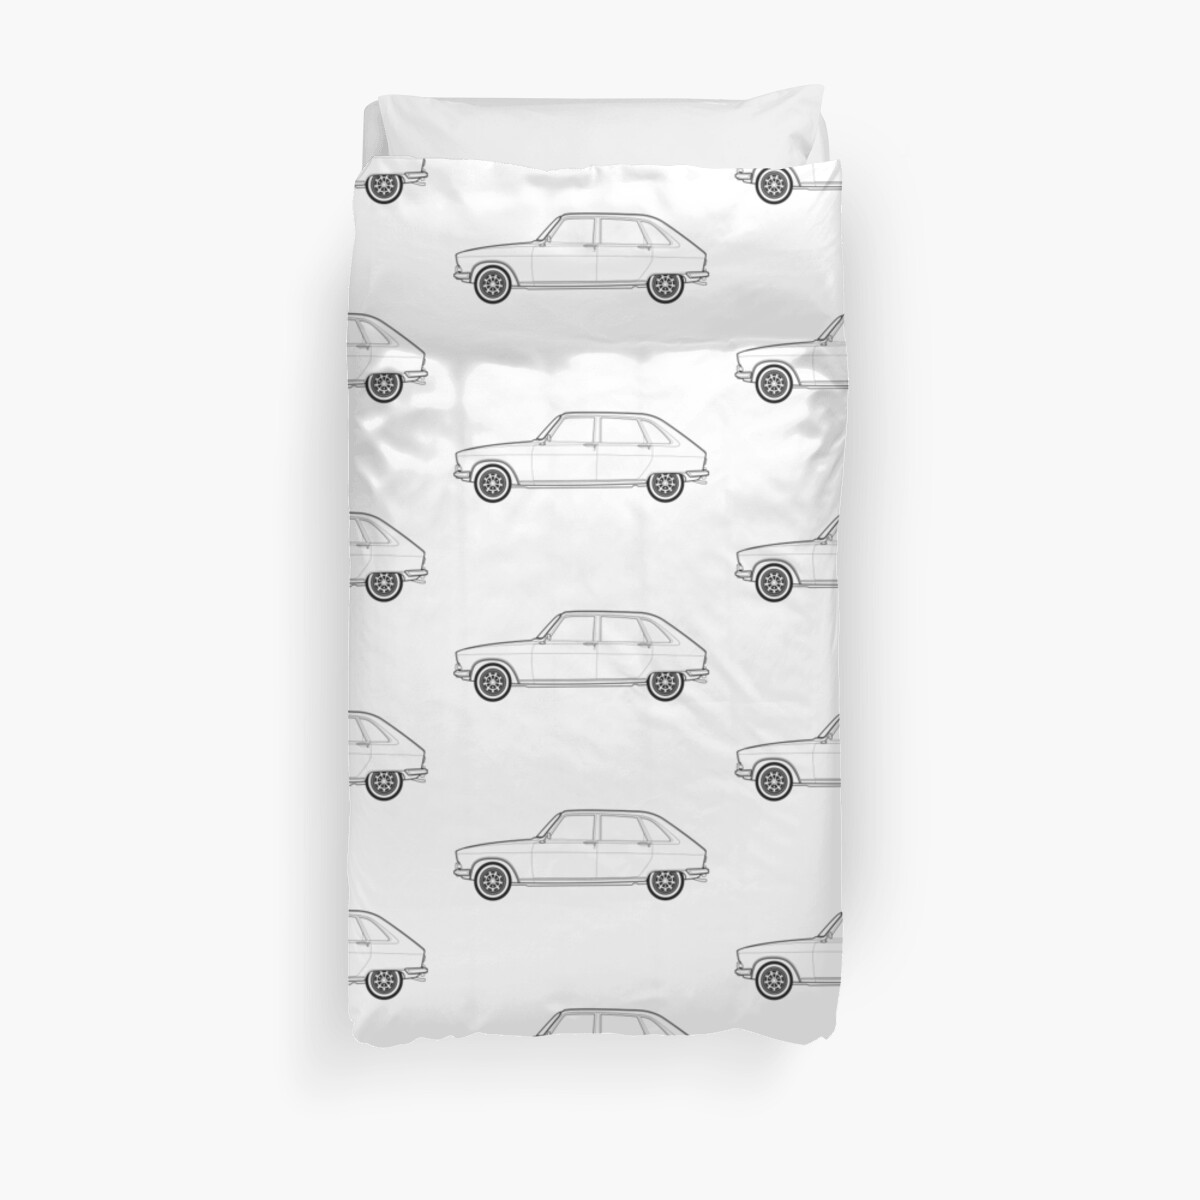 Renault 16 Classic Car Outline Artwork Duvet Covers By